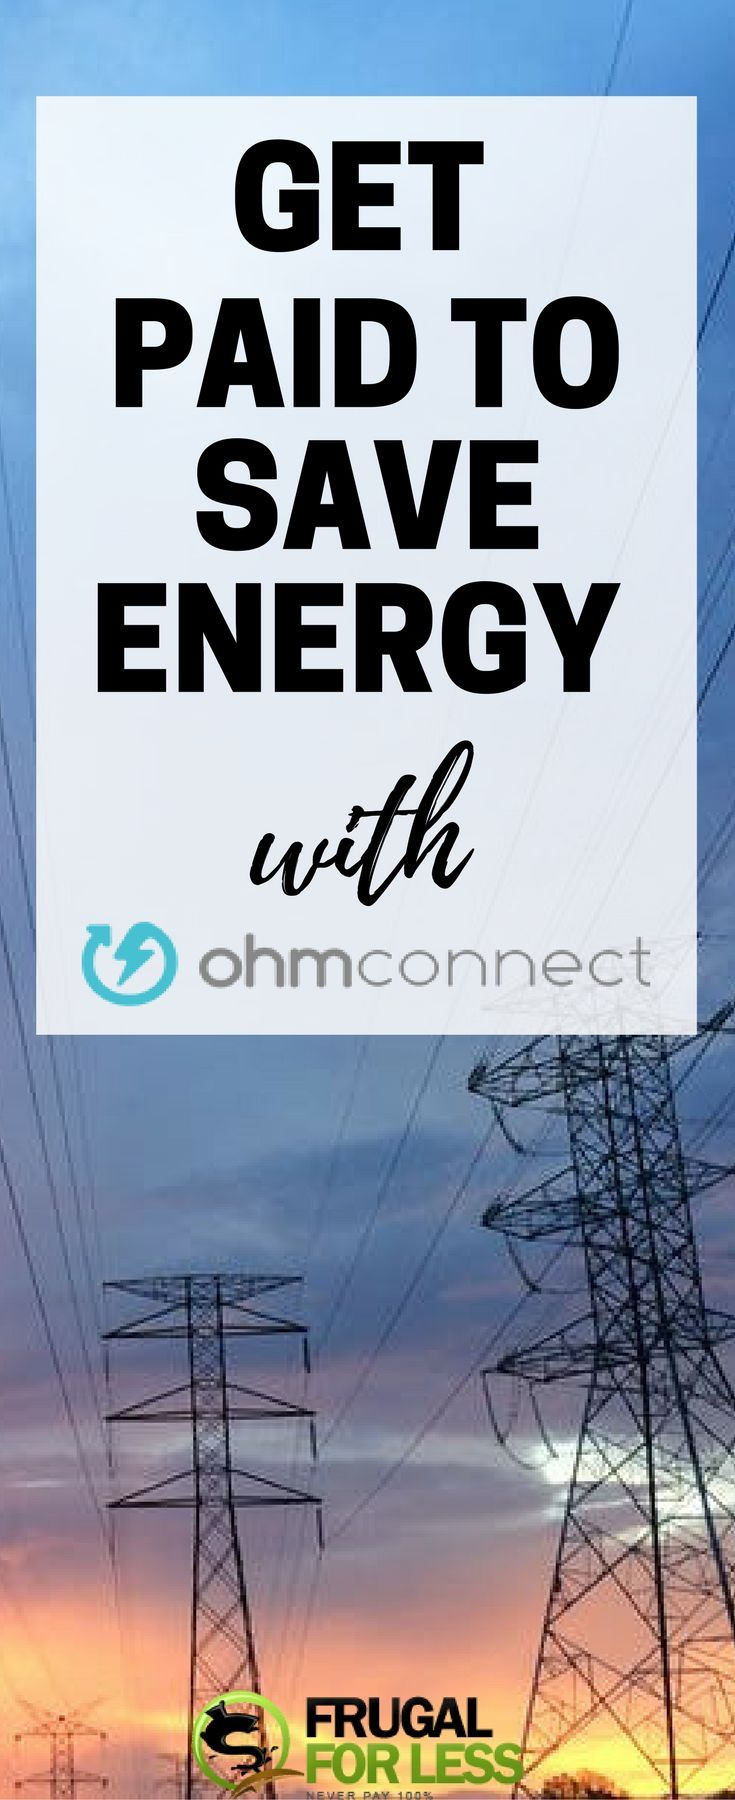 ohmconnect | save money | frugal living | electric bill | electric bill savings tips | electricity bill savings | save money electric bill | save money on electricity - Tap the link to shop on our official online store! You can also join our affiliate and/or rewards programs for FREE!